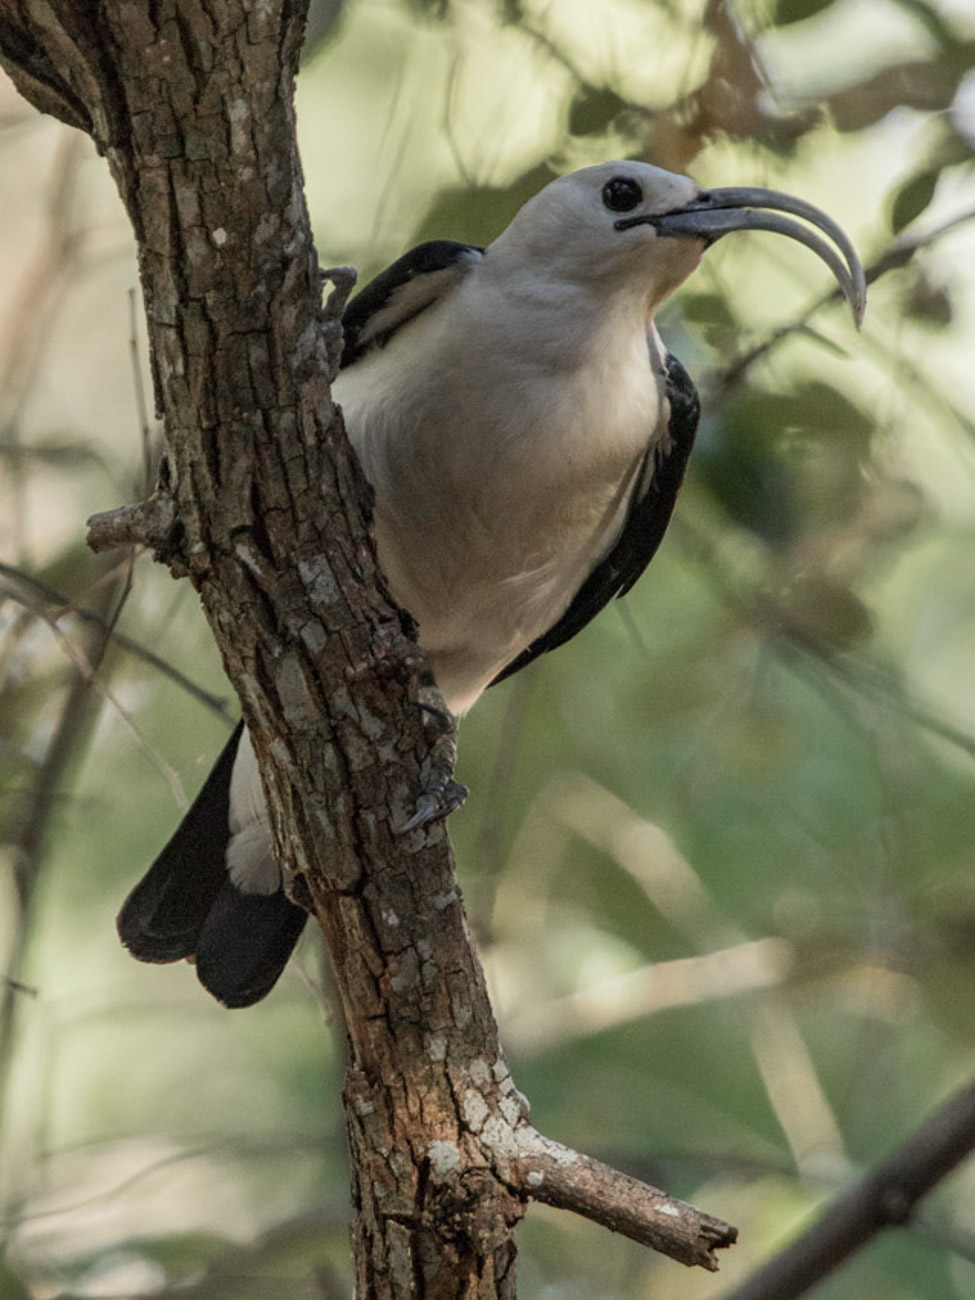 Sickle-billed Vanga, Ankarafantsika National Park - Madagascar